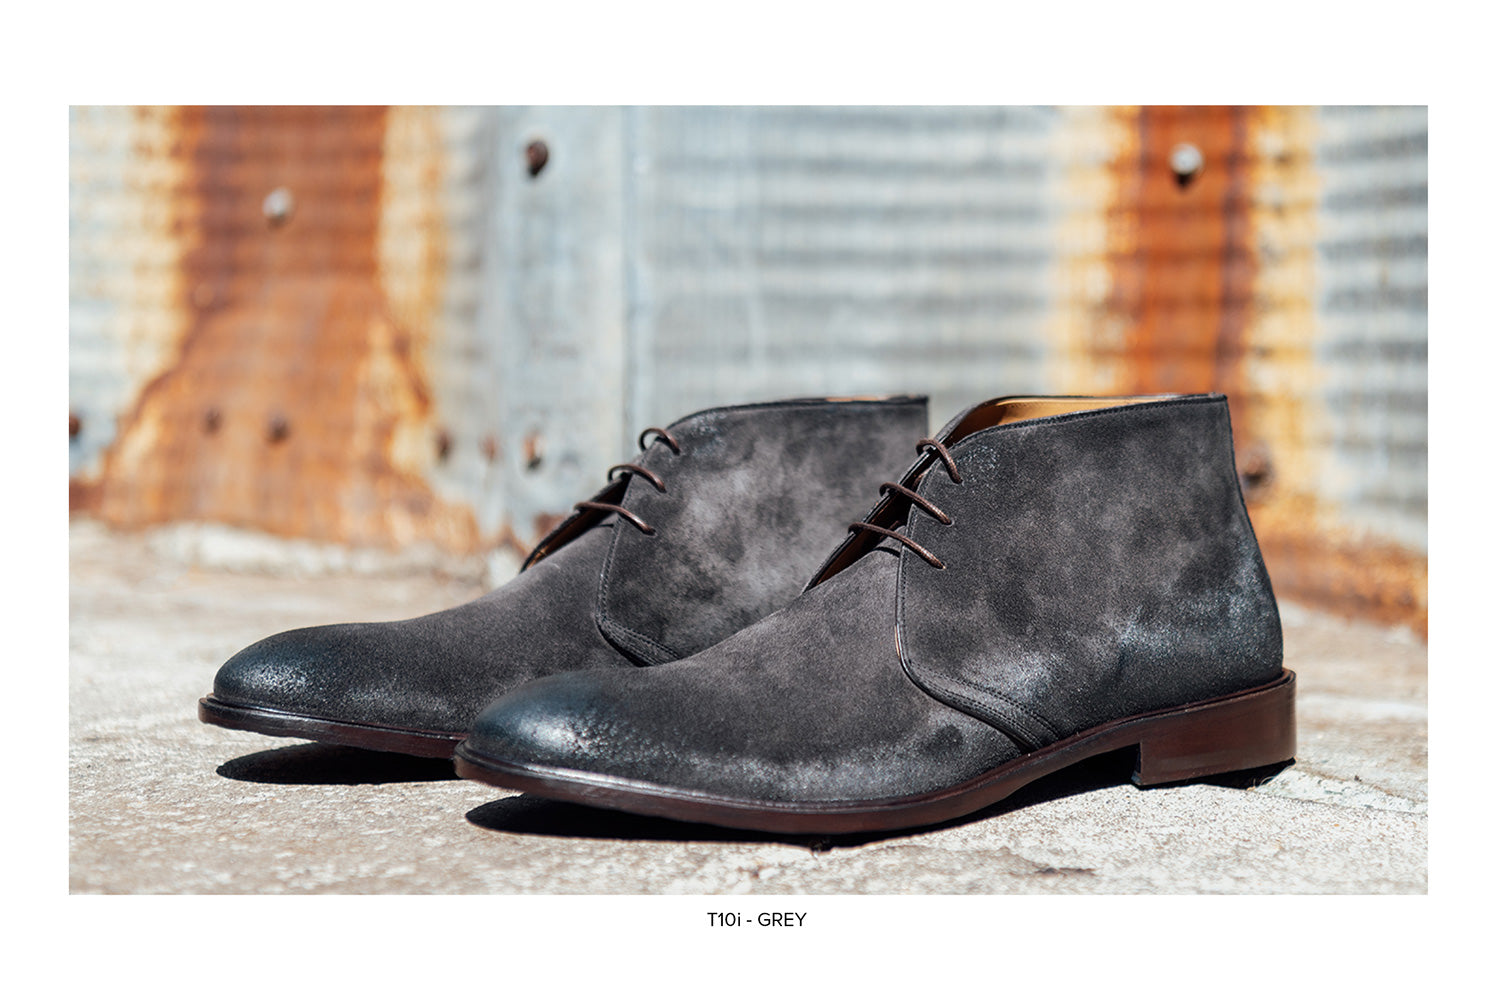 T10i Chukka Boot in Grey by Blake McKay